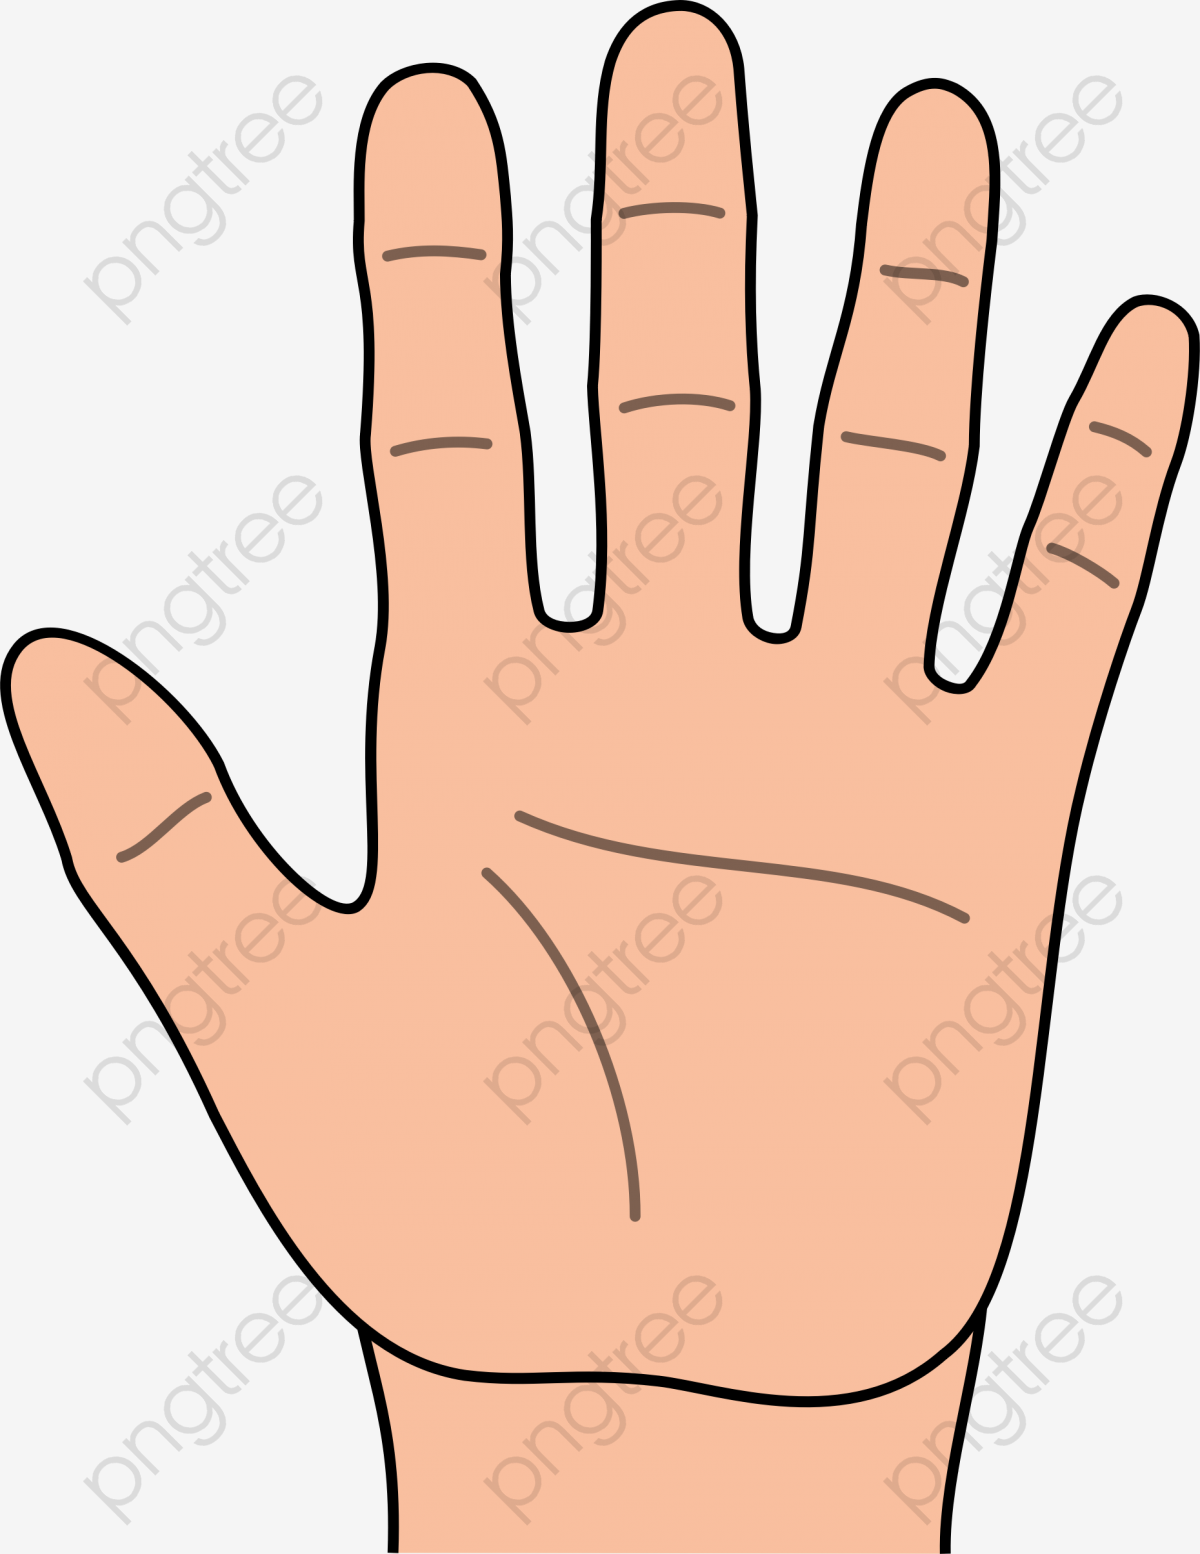 Left Hand Cartoon Hd, Cartoon Clipart, Palm, Five Fingers PNG.